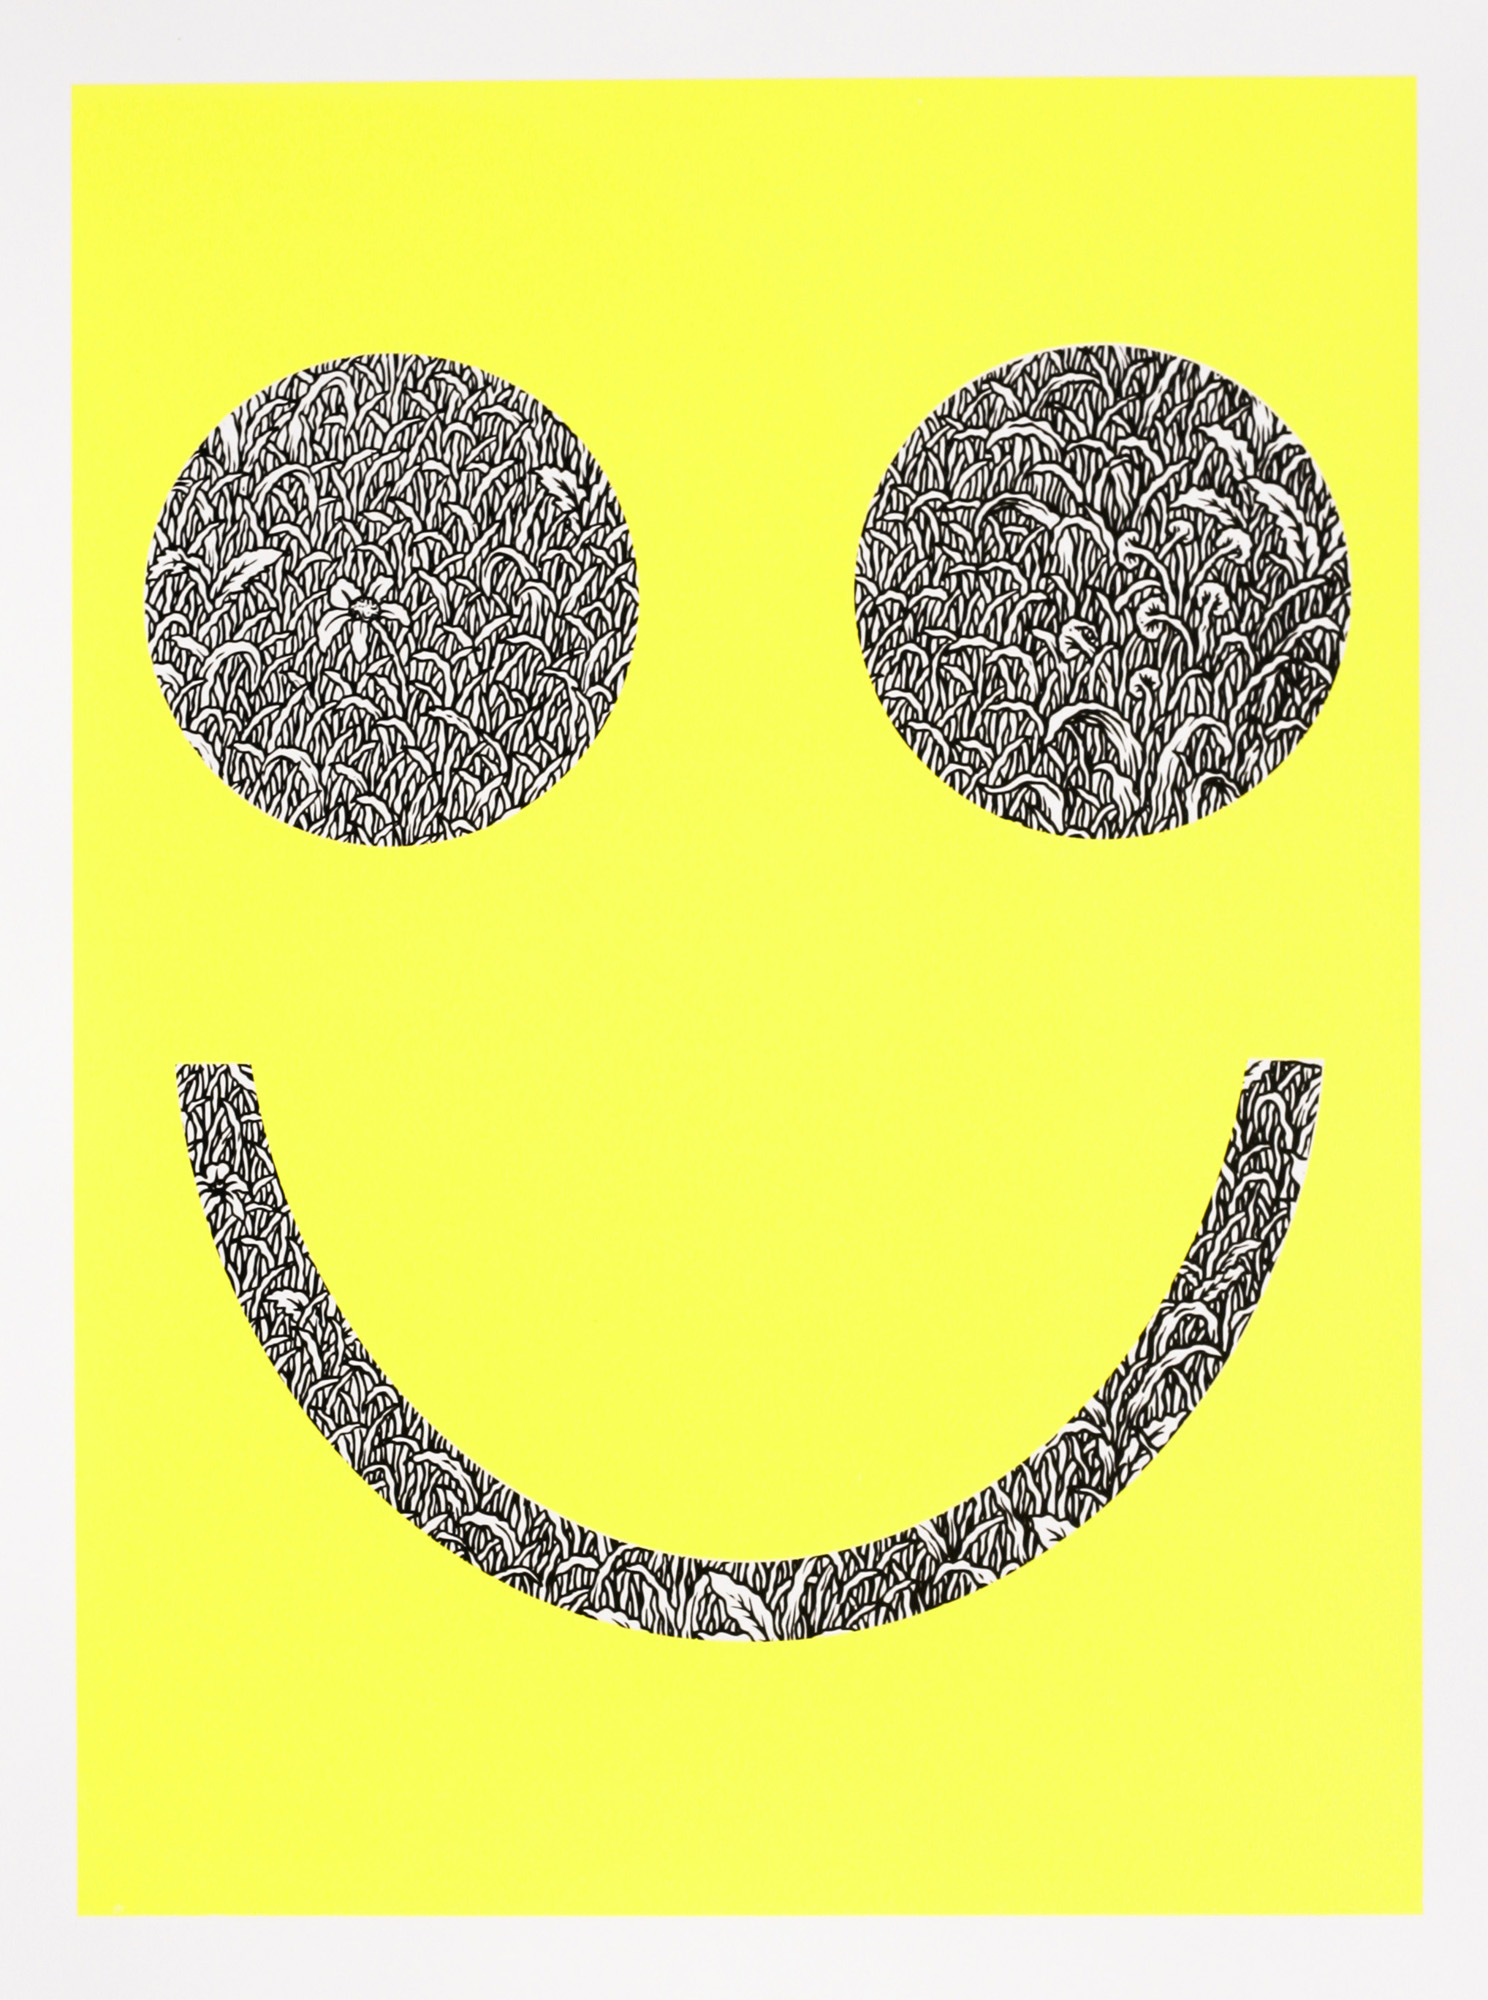 Tyler Krasowski   Smiles   screenprint  2014